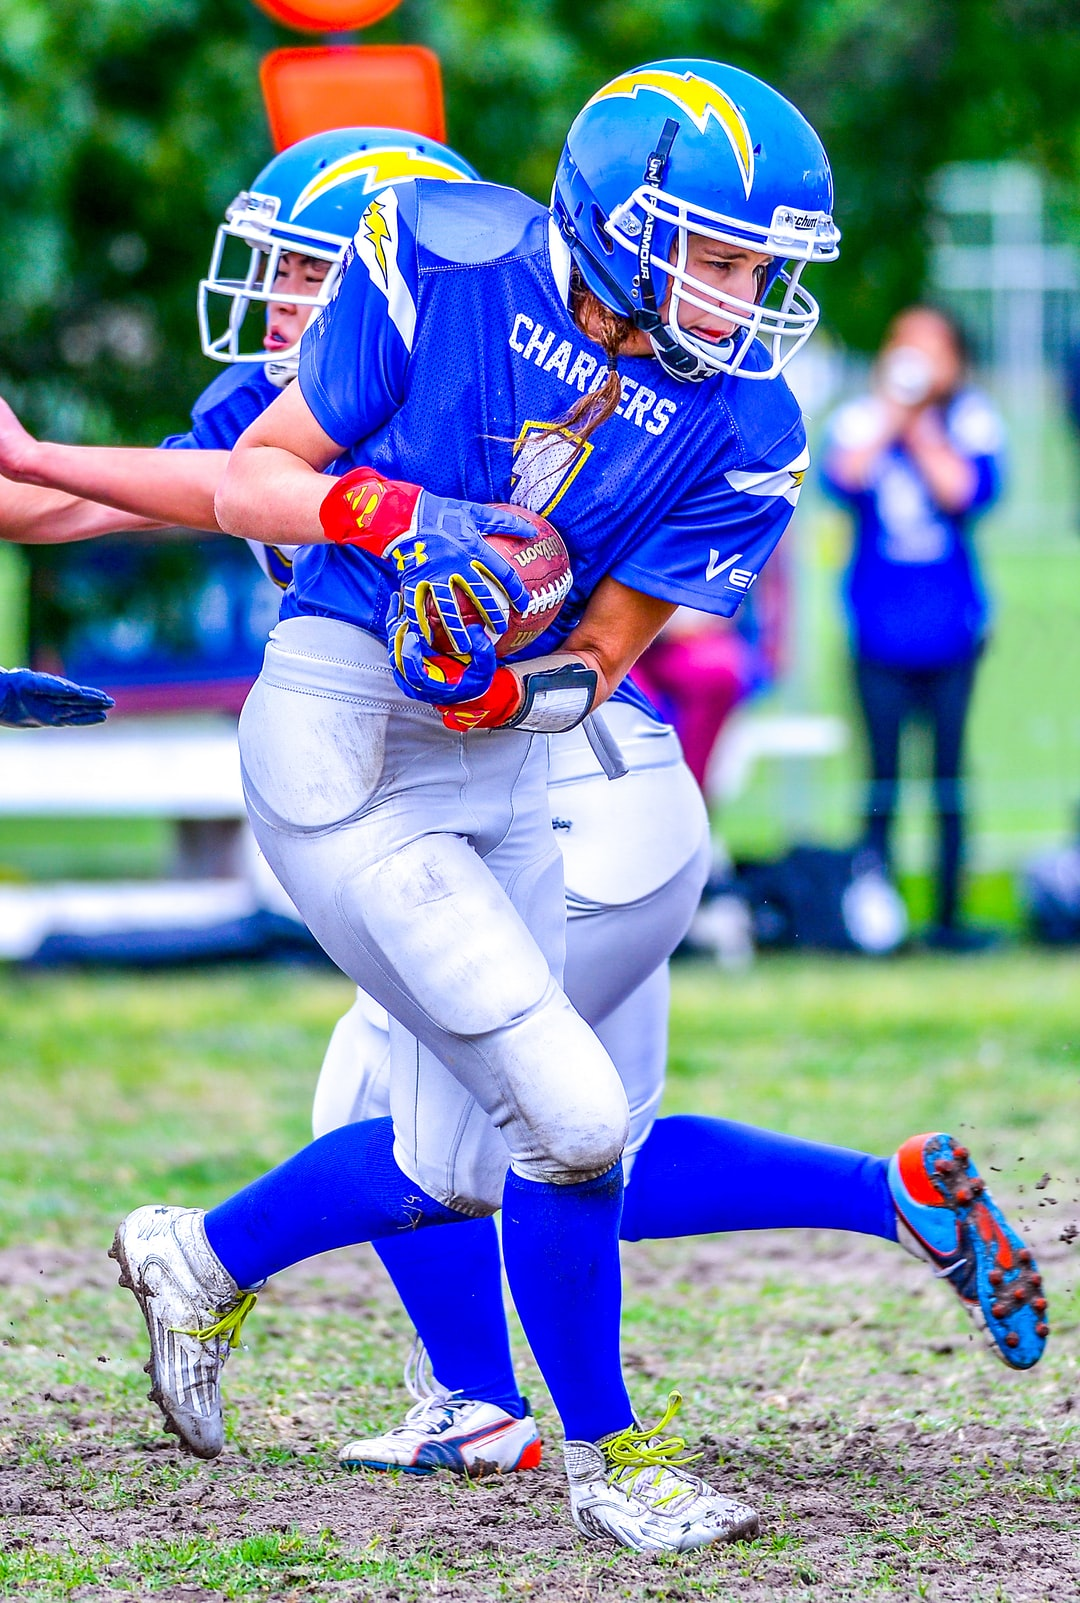 Madeline Kop on her way to the end zone